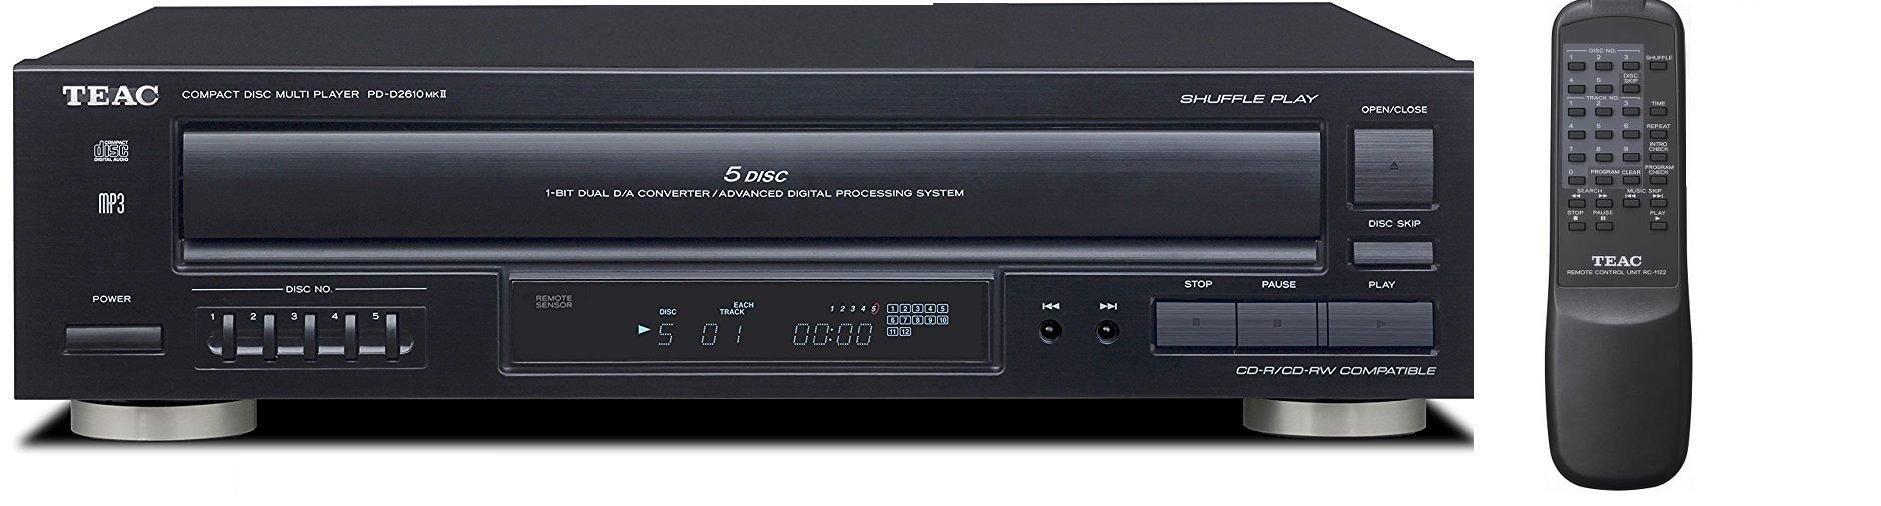 Teac PD-D2610MKII 5-Disc Carousel CD Player Changer Remote CD,CD-R/RW, MP3 Disks (Renewed) by Teac (Image #1)